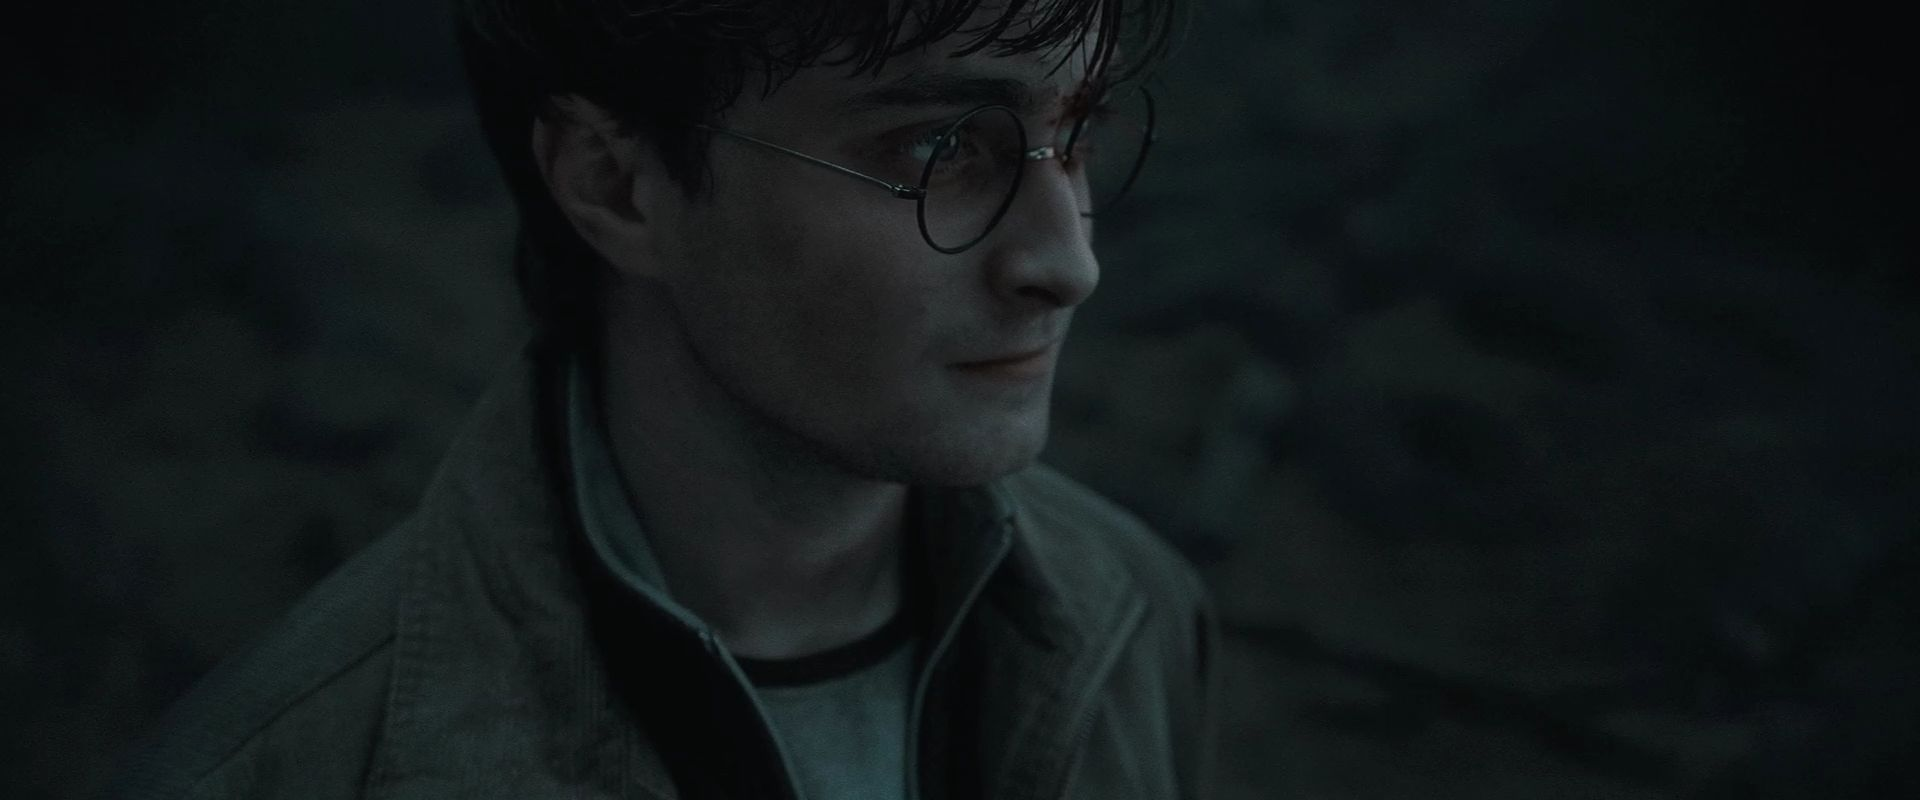 The 5 Most Iconic Moments In 'Harry Potter And The Deathly Hallows - Part 2' - Harry Accepts His Fate